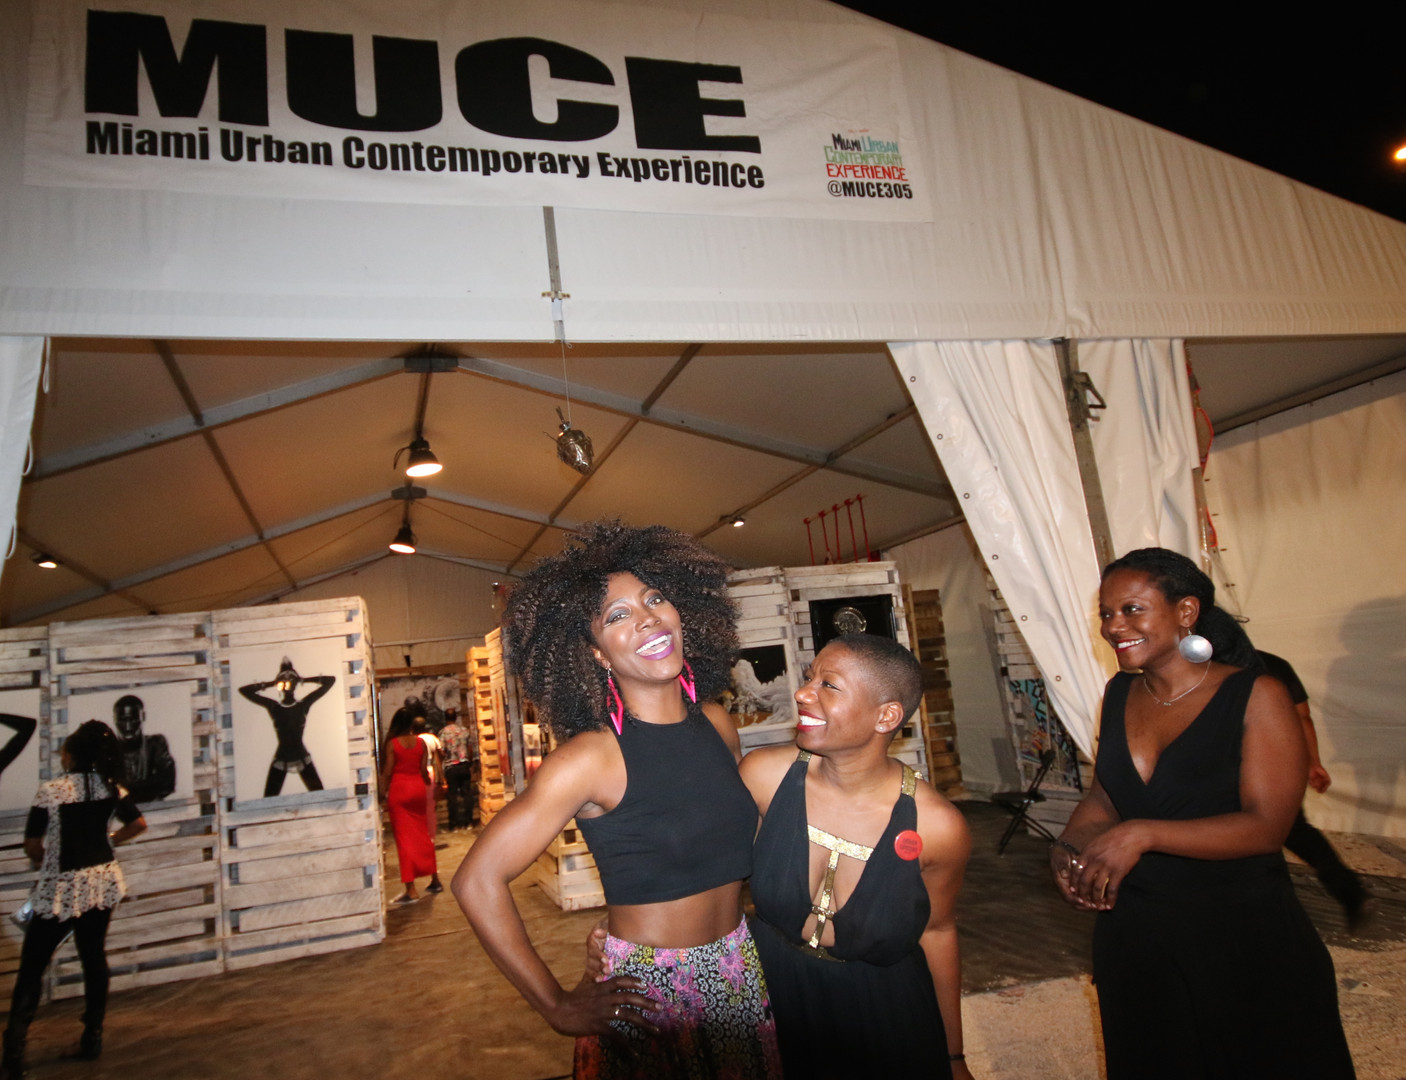 MUCE art exhibition